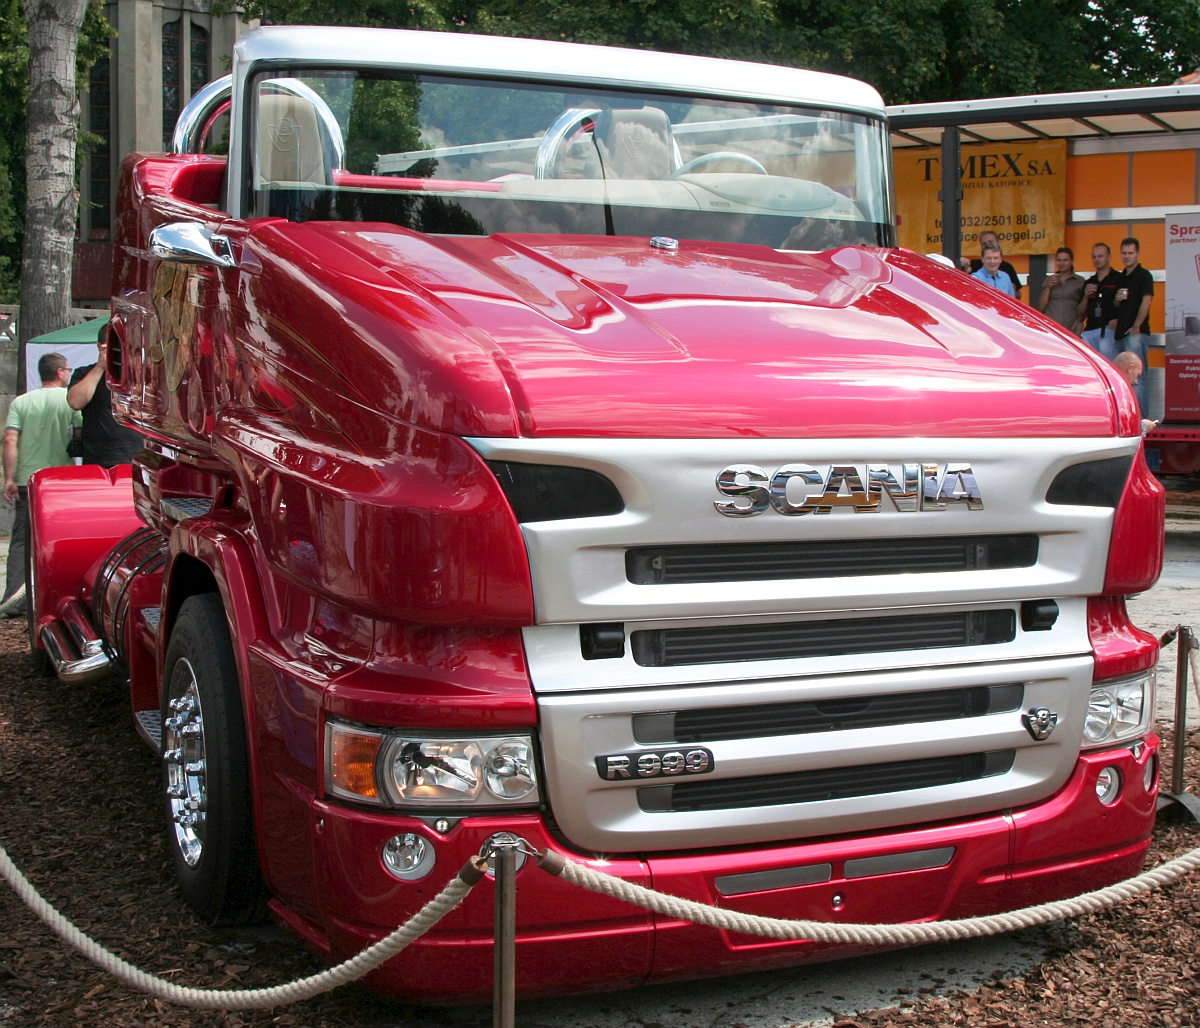 Scania-R999-Svempas-by-remigiuszScout